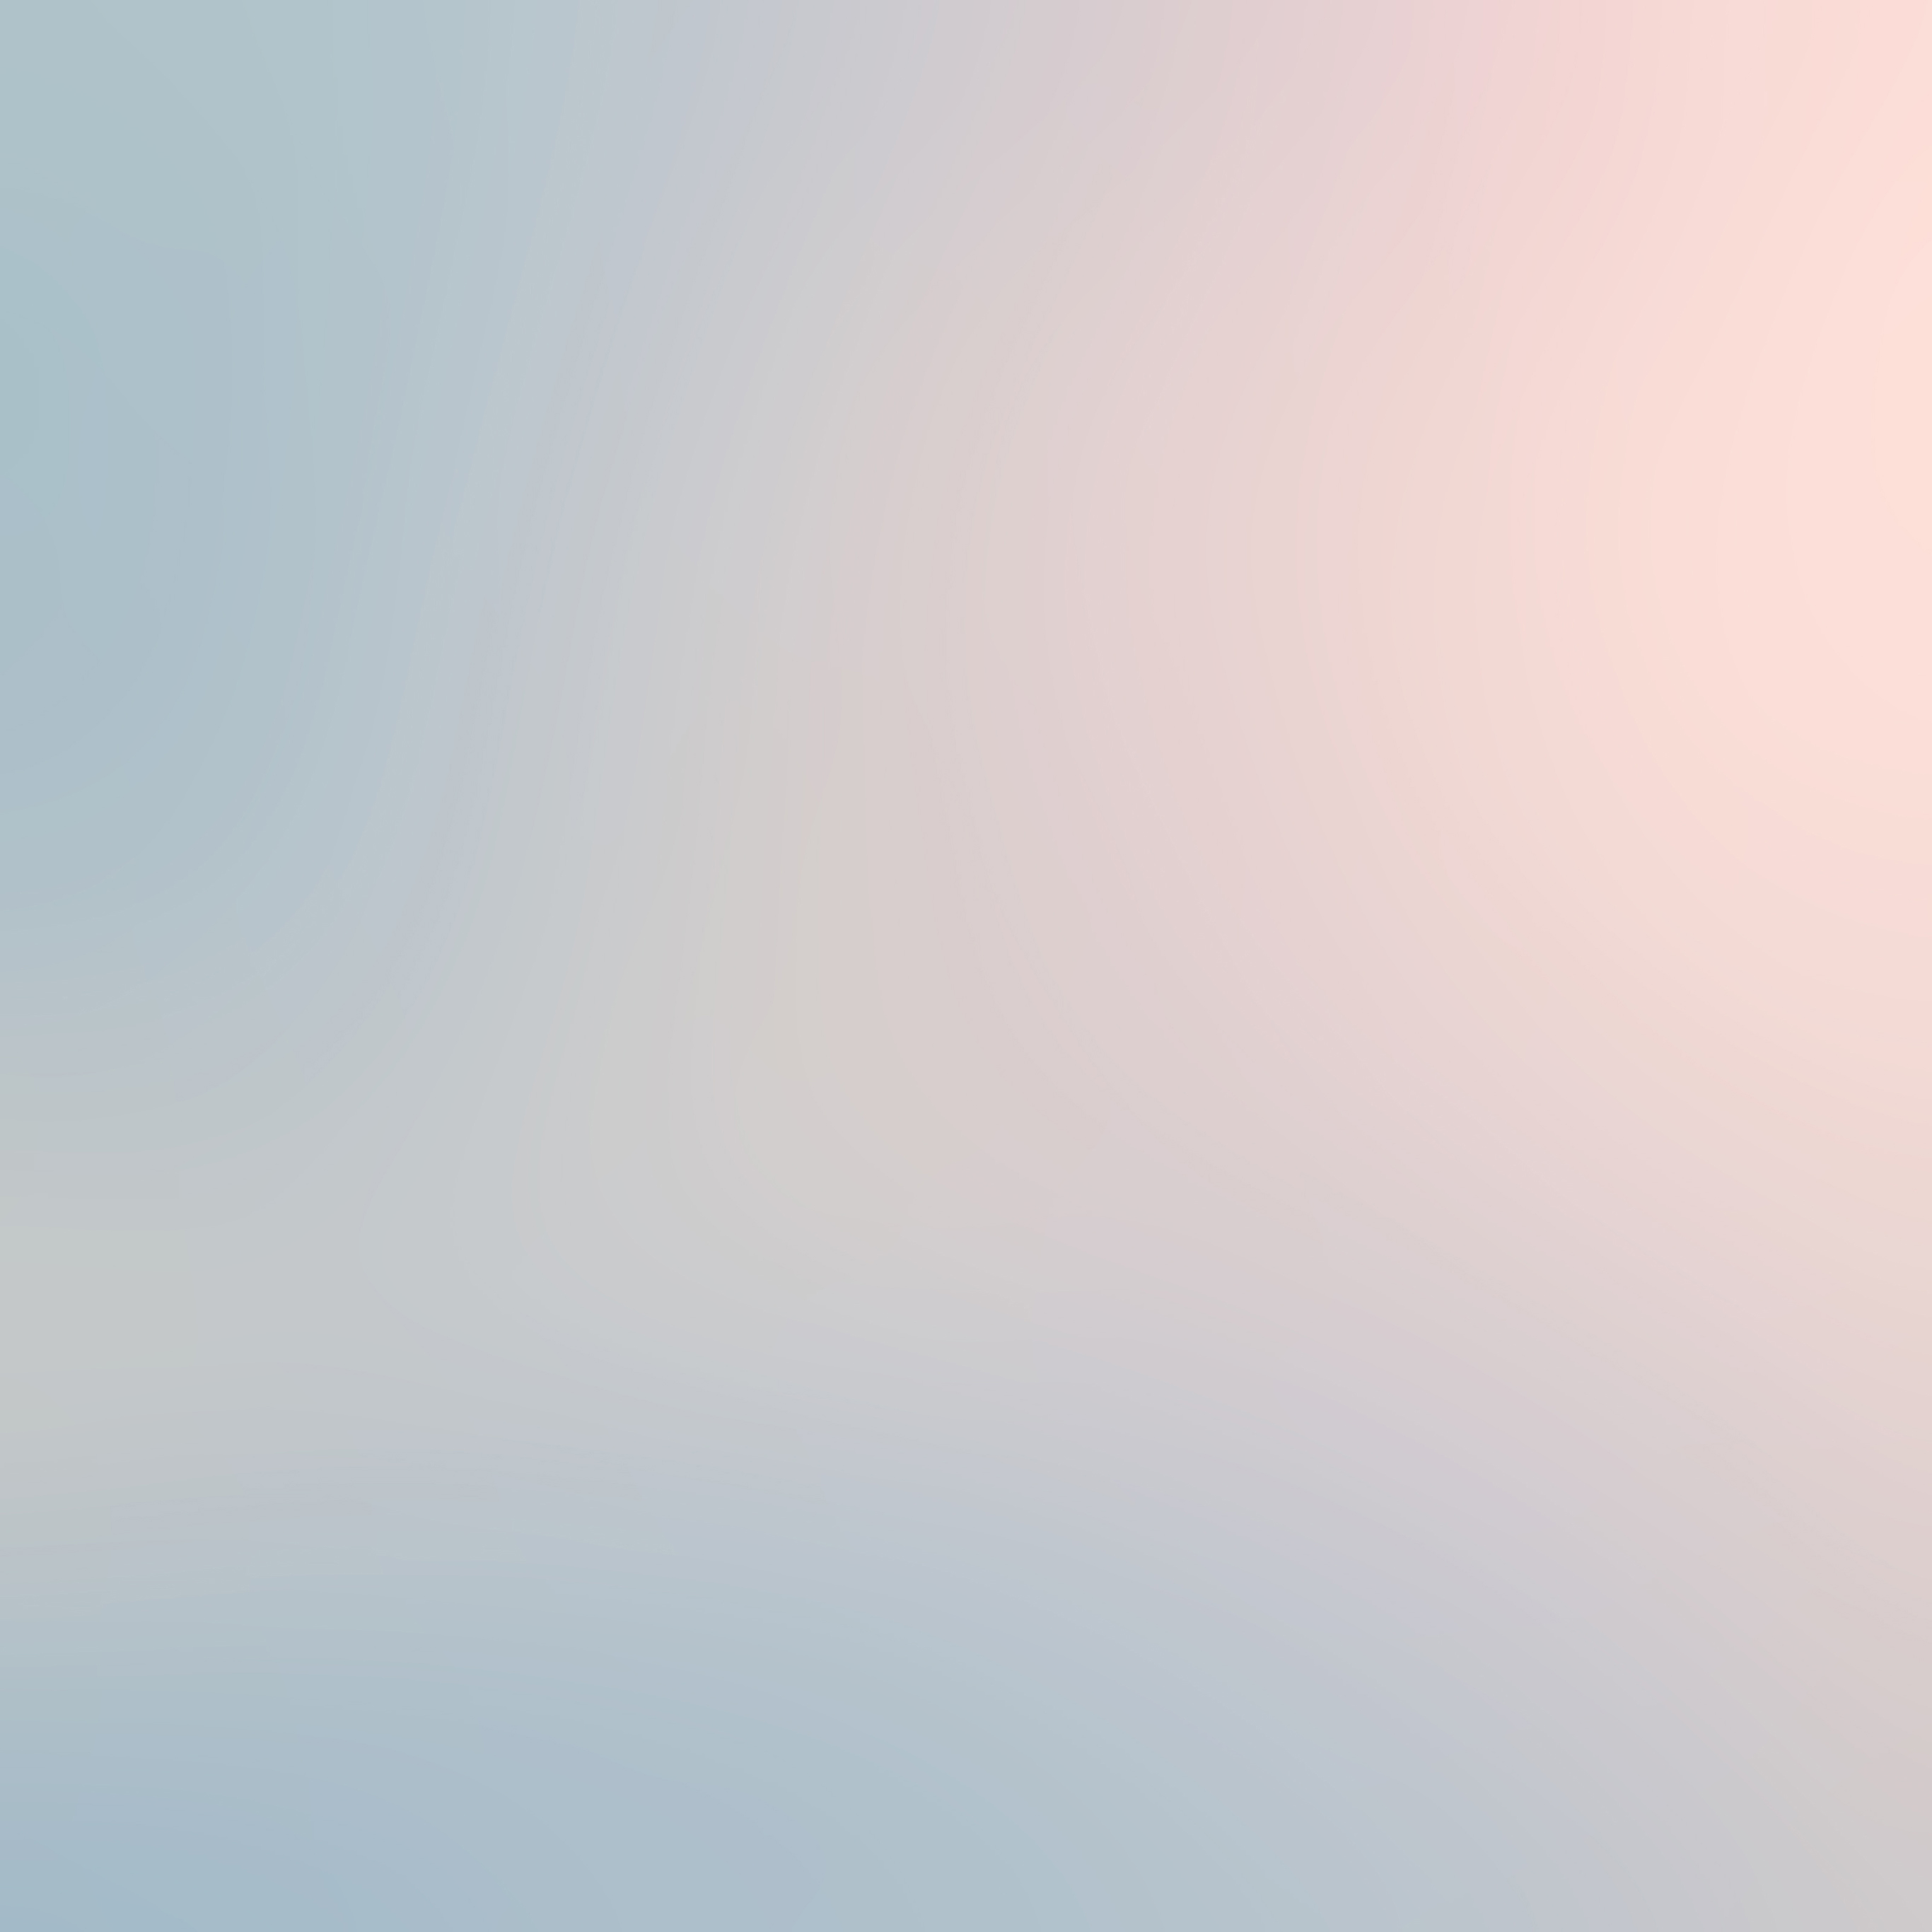 PAPERS.co   Android wallpaper   sa52-blurred-white-blur ...